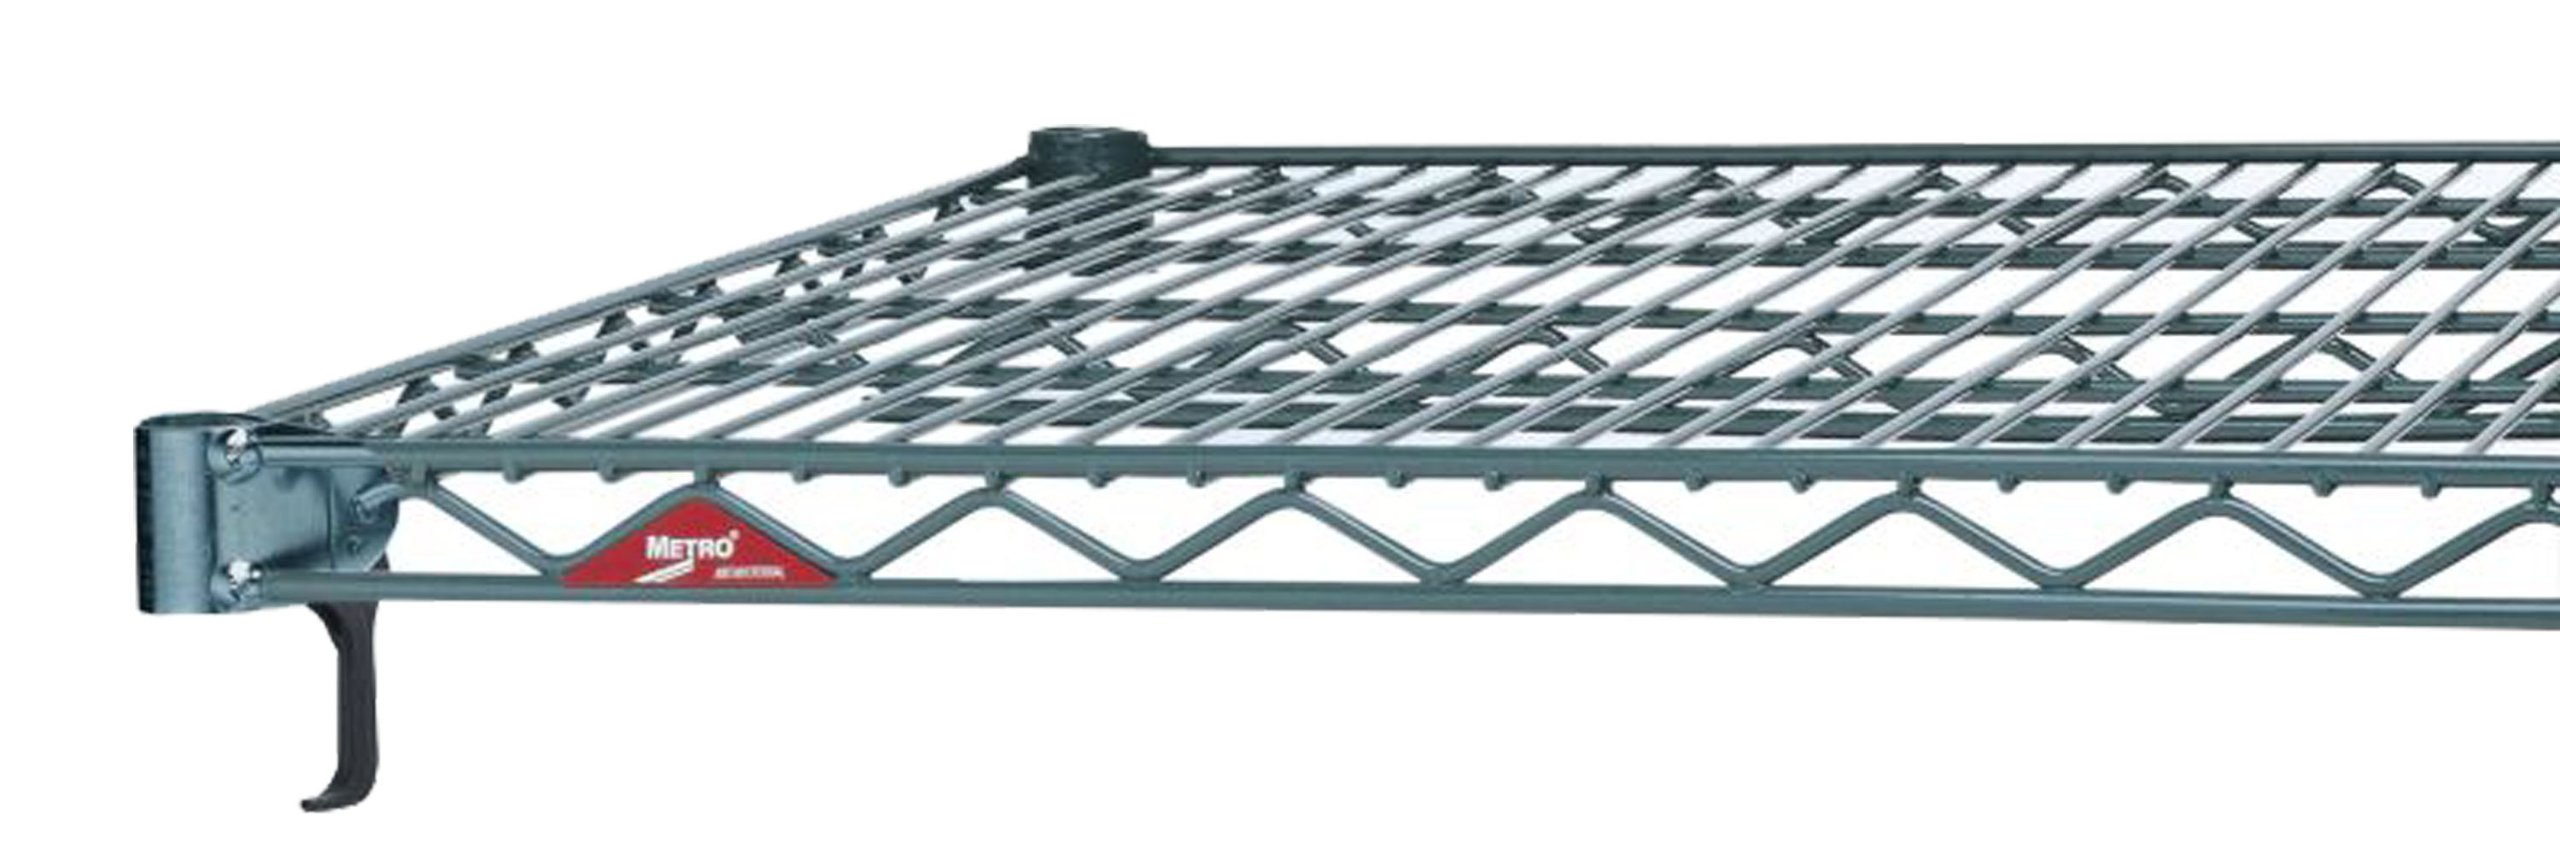 Metro A2436NK3 Super Adjustable Metroseal 3, Steel Wire Shelf with Microban, 800 lb. Capacity, 1'' Height x 36'' Width x 24'' Depth (Pack of 4)